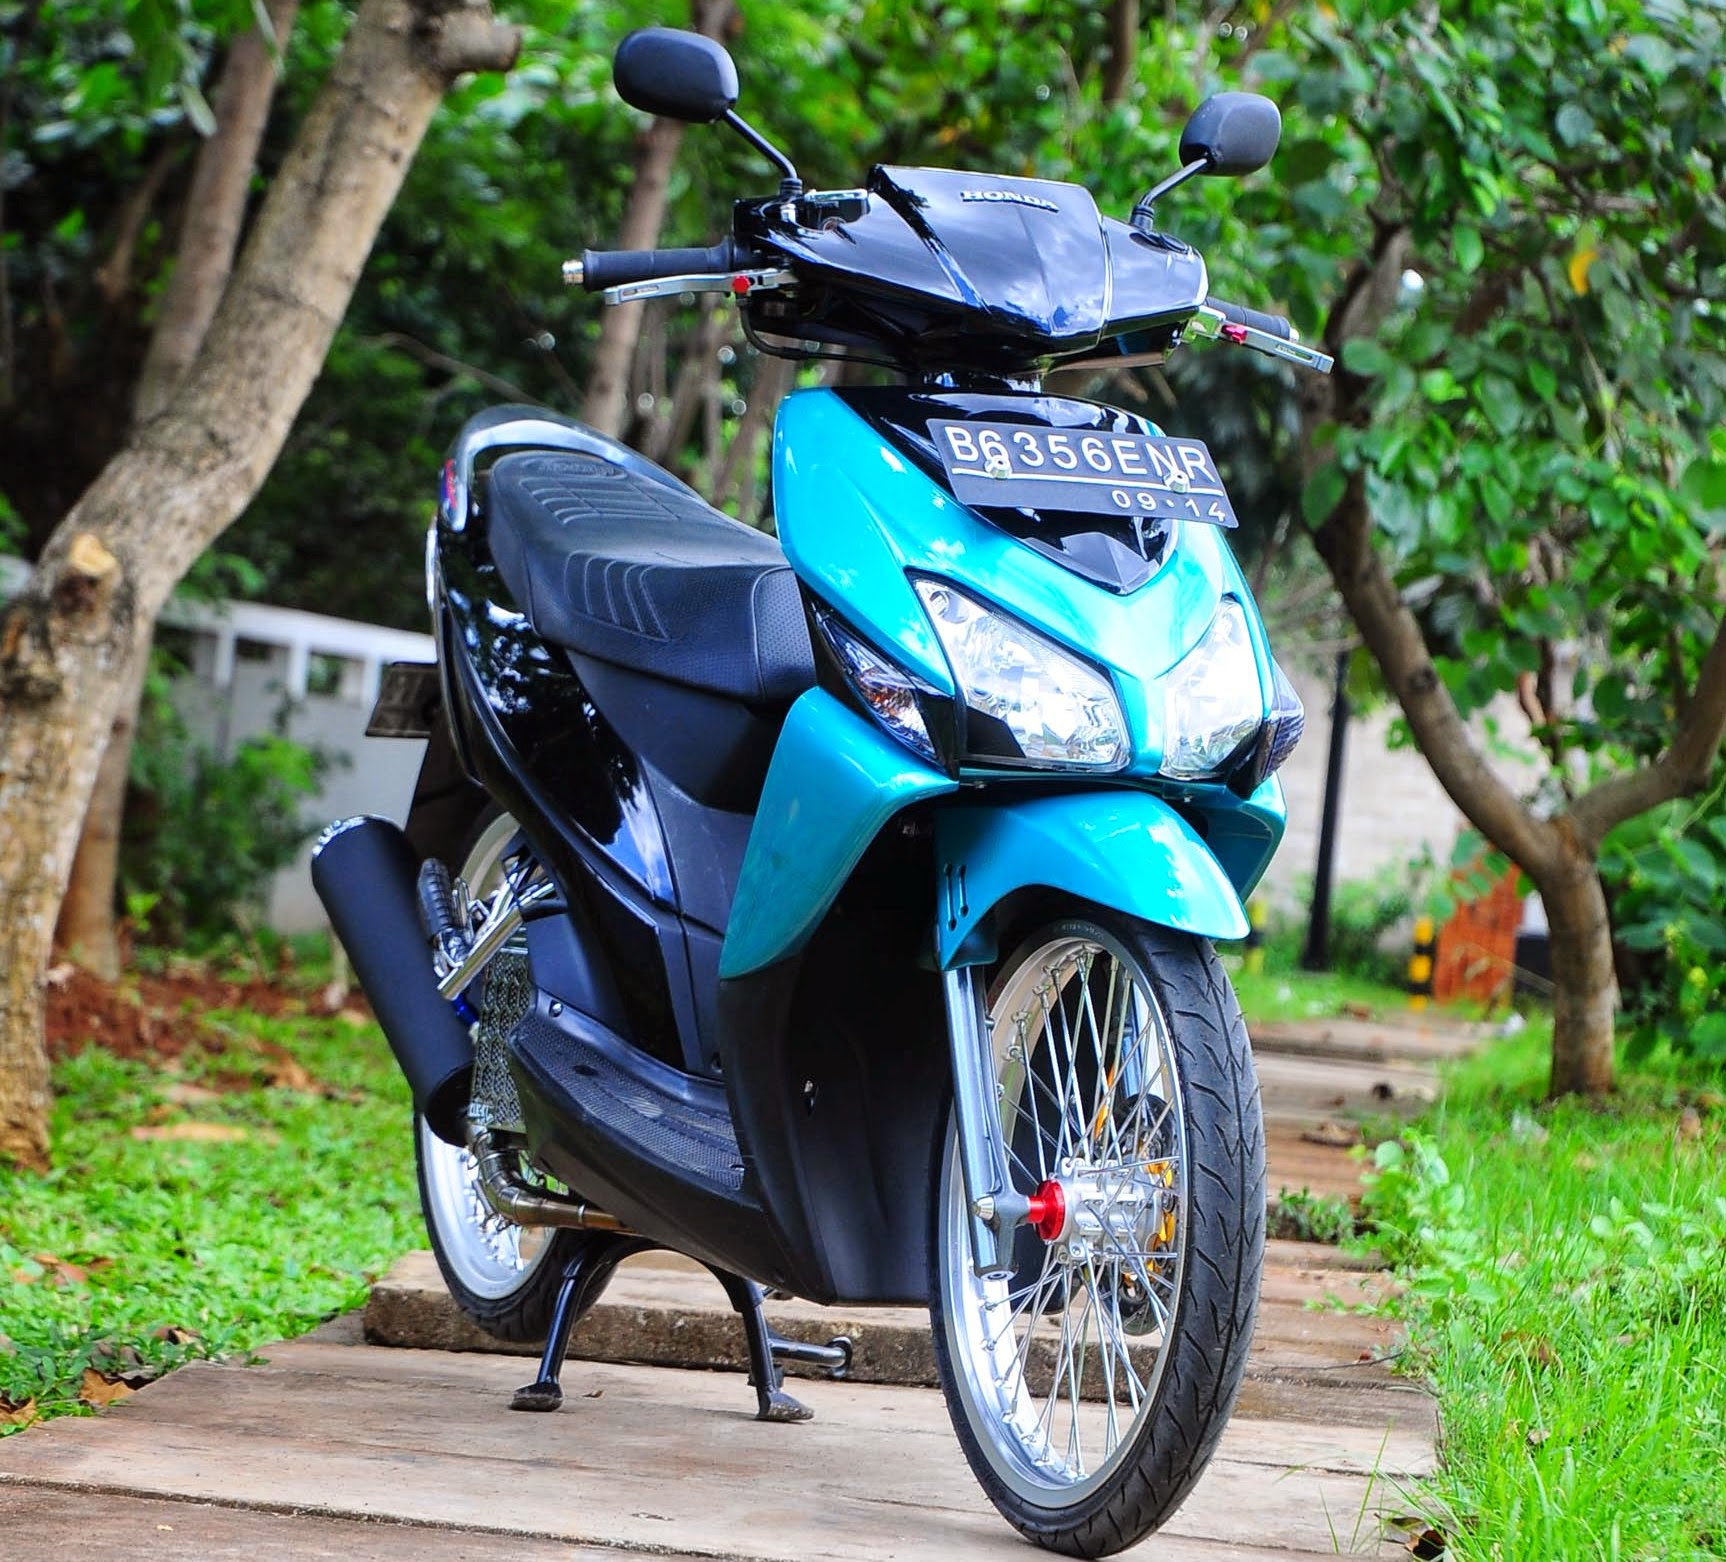 Modifikasi Vario Techno Cbs Velg 17